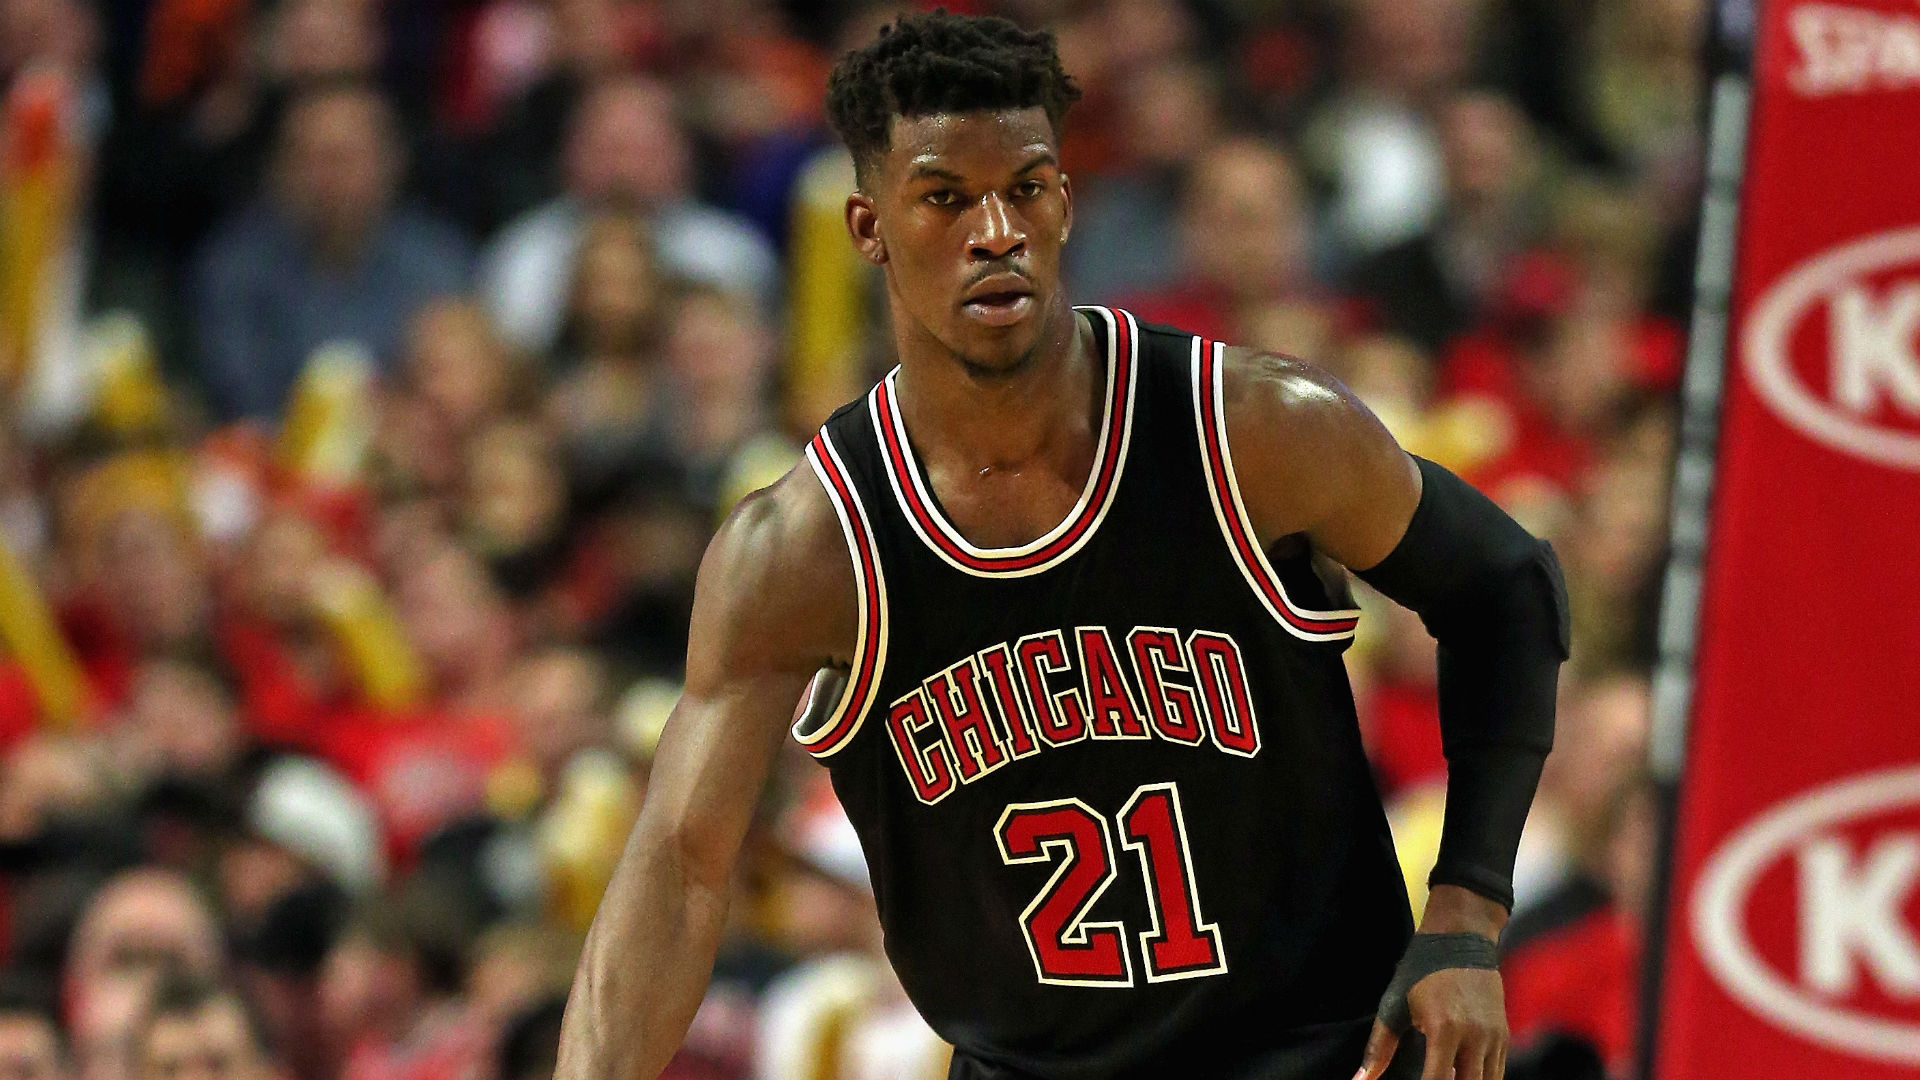 Jimmy Butler Dunking Wallpaper - WallpaperSafari |Jimmy Butler Dunk Wallpaper